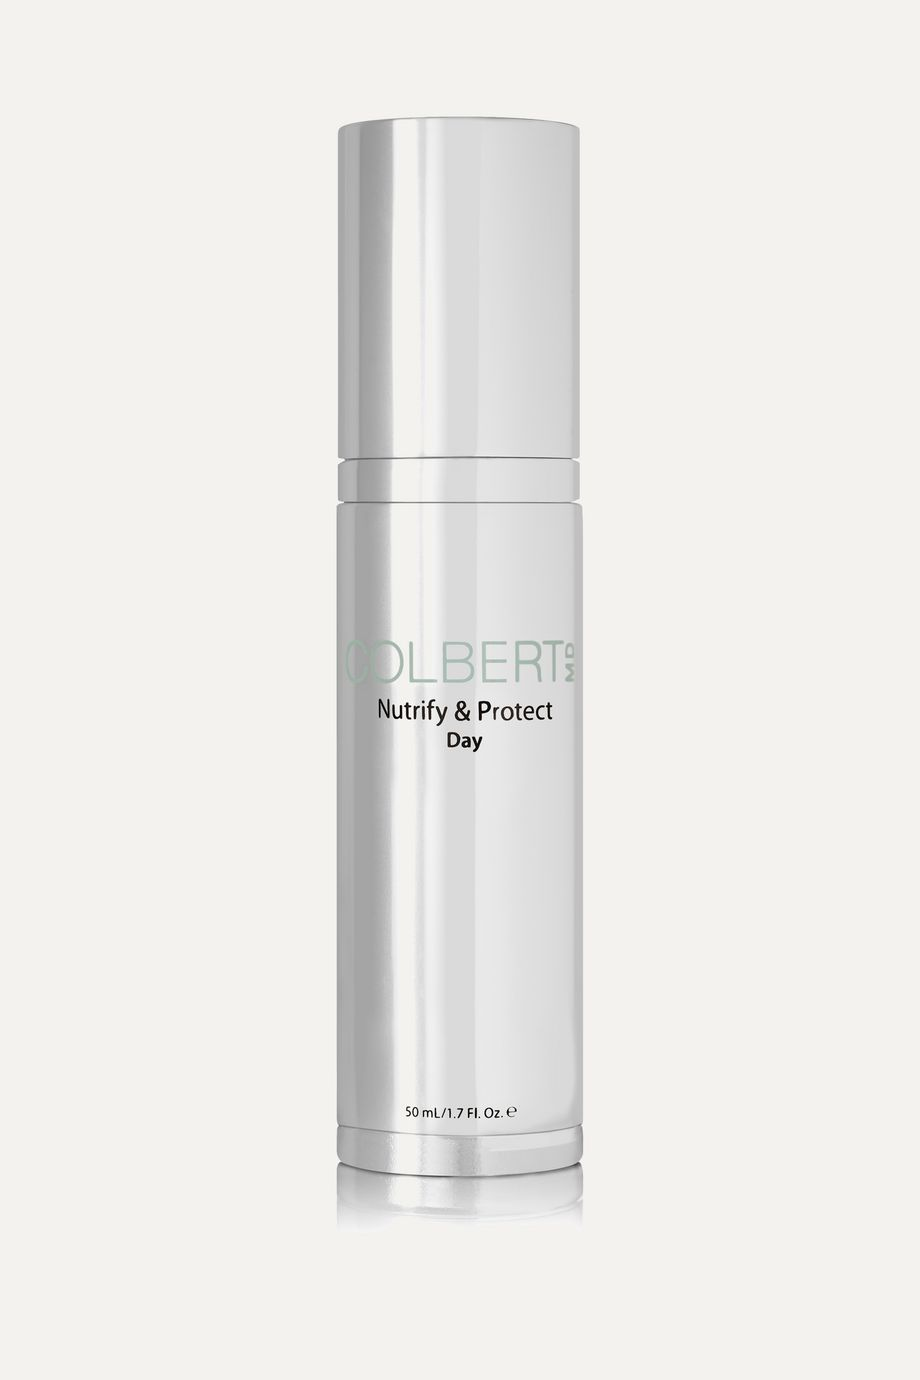 Colbert MD Nutrify & Protect Day Moisturizer, 50ml